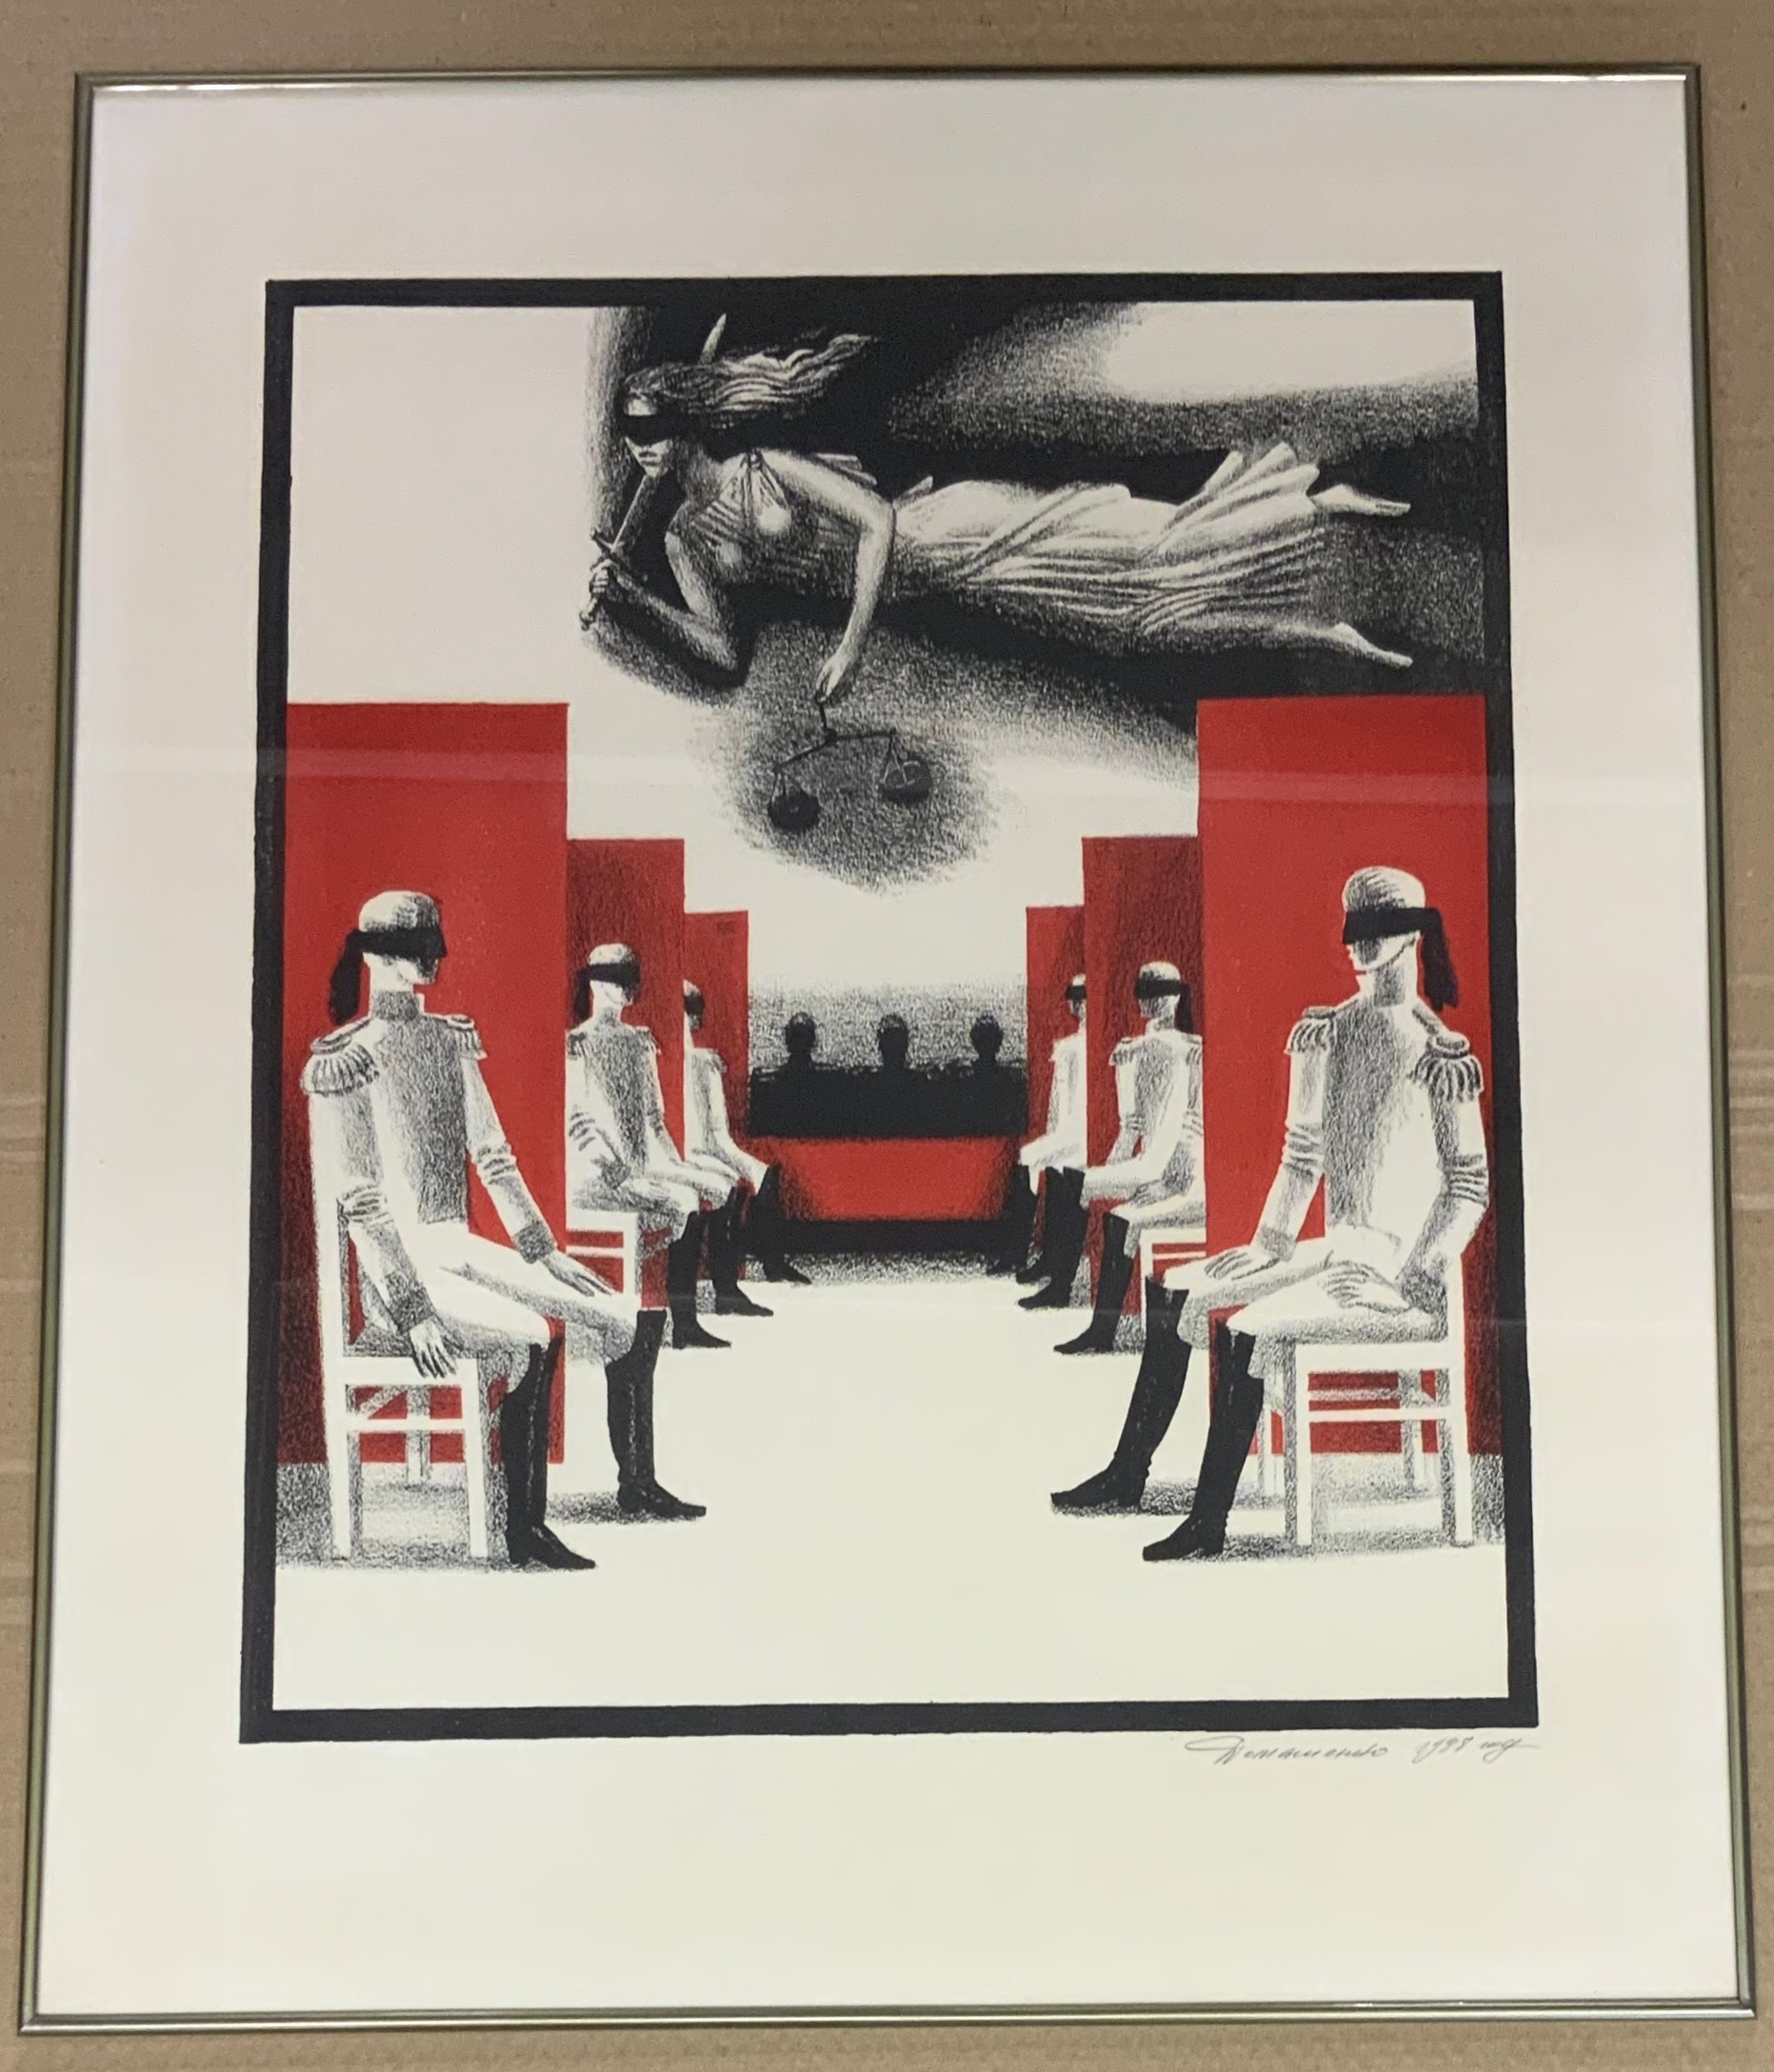 PAIR OF FRAMED LARGE SIGNED LINOCUT RUSSIAN PRINTS - Image 2 of 2